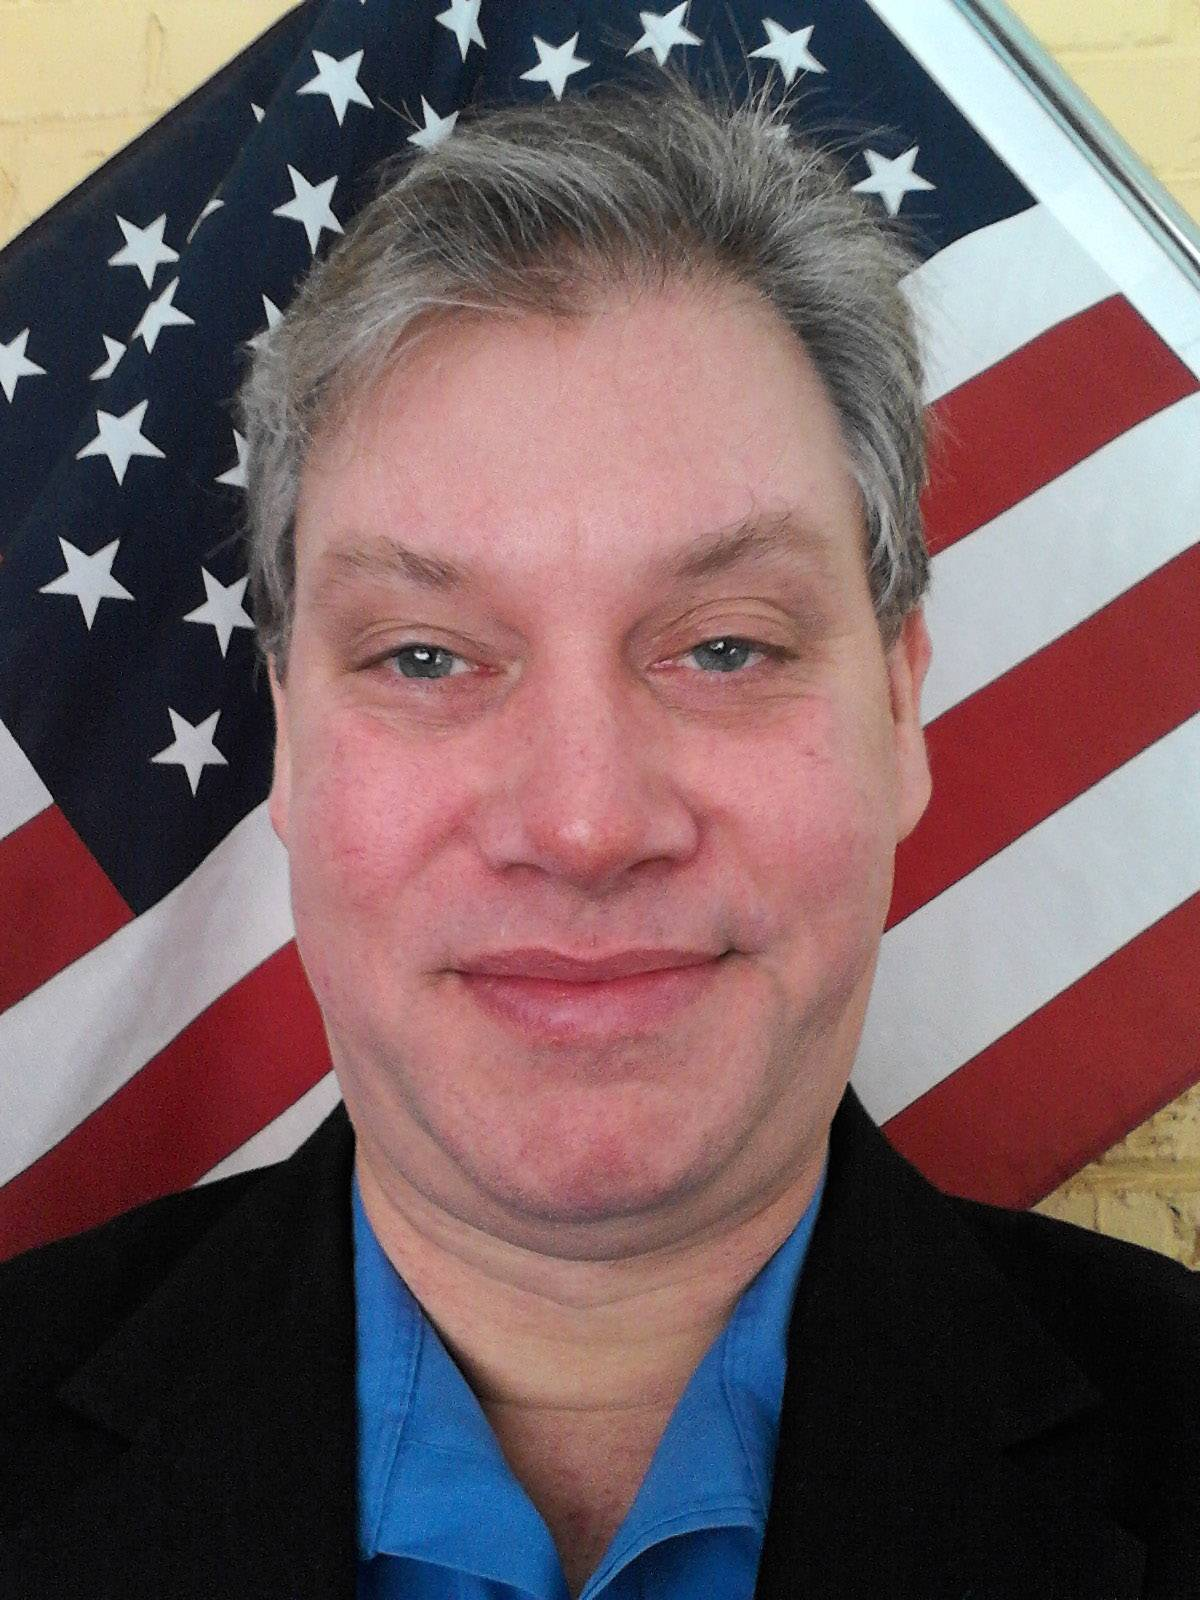 Thomas Earley, running for Bensenville Park Board (6-year Terms)